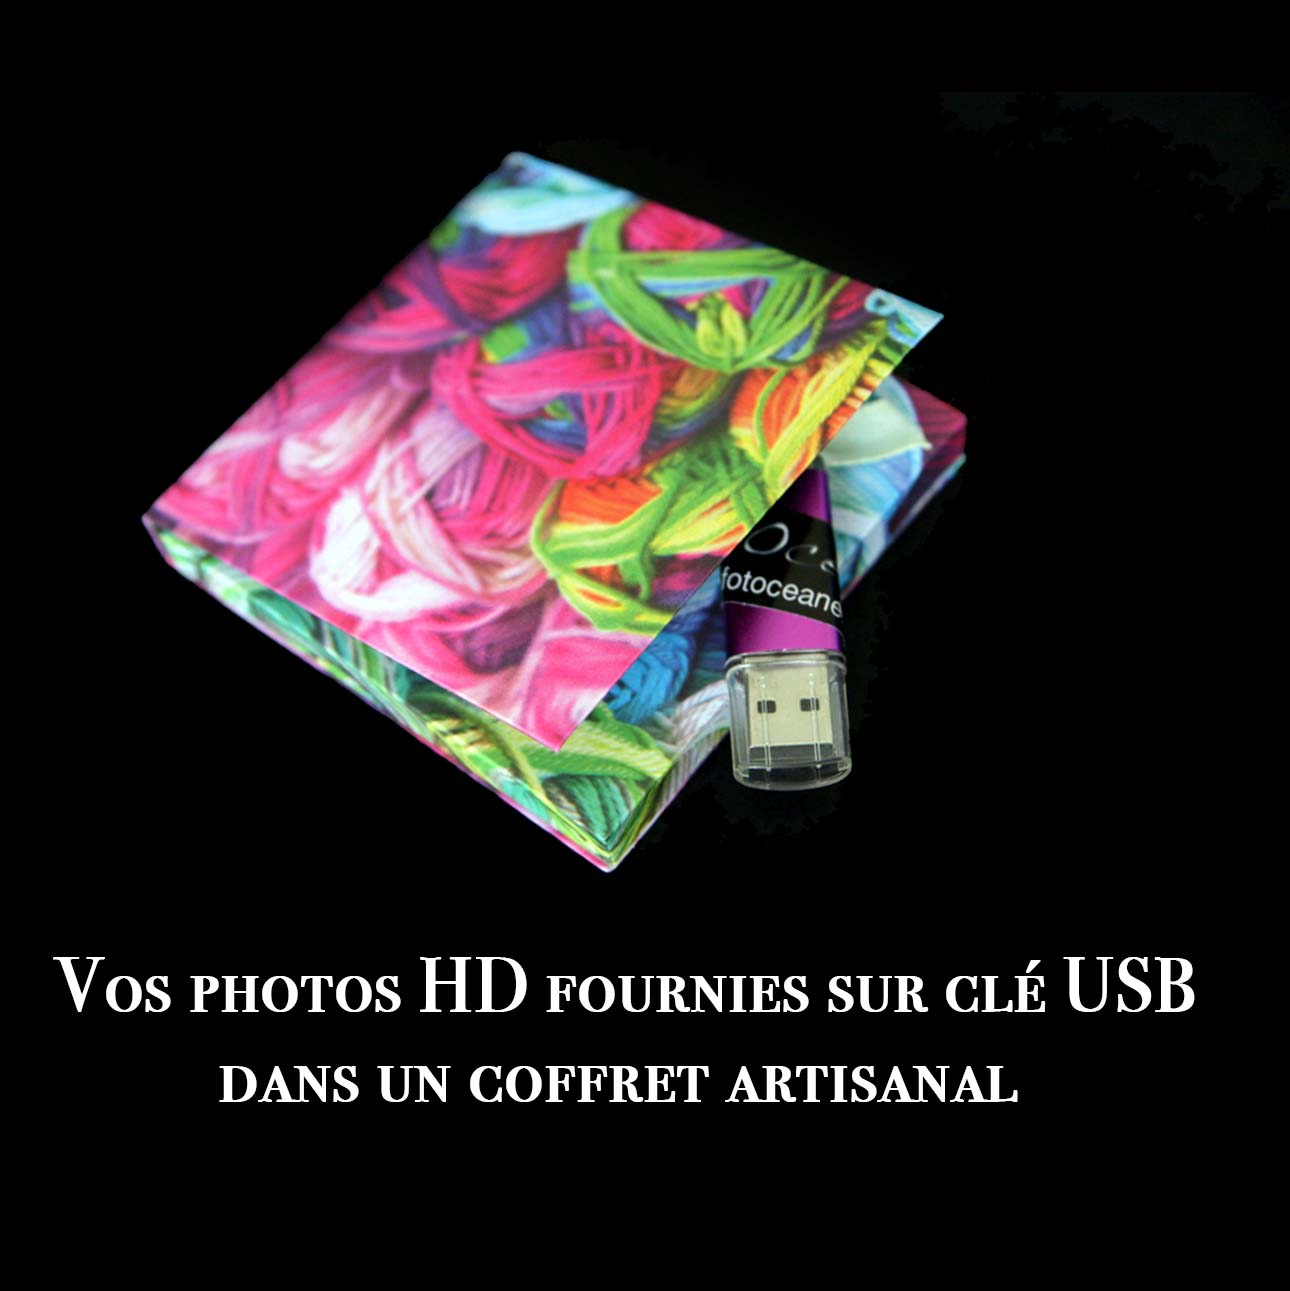 photos sur clé usb apres shooting